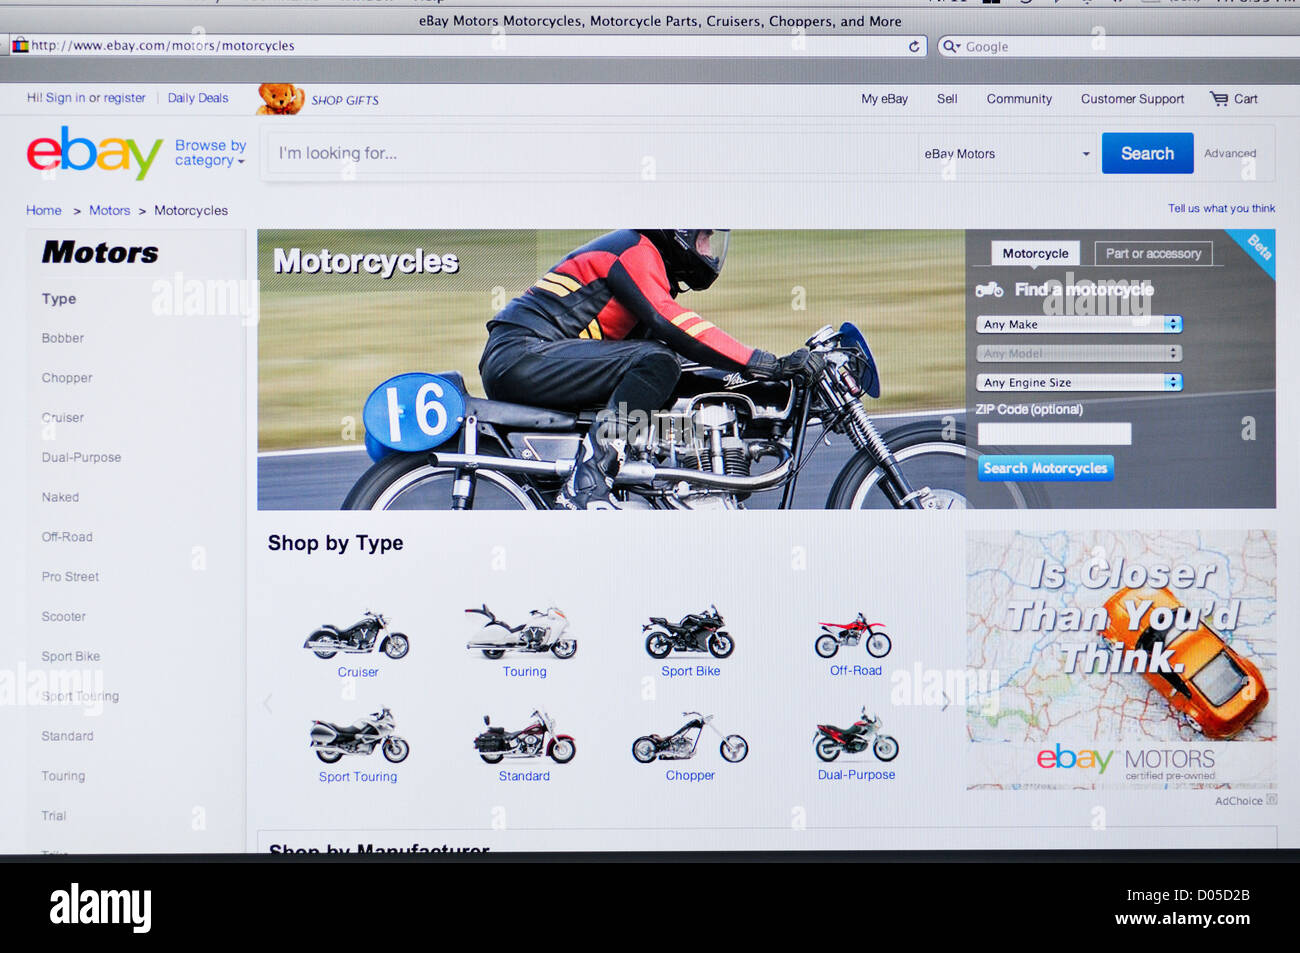 Ebay website - online shopping for motorcycles Stock Photo